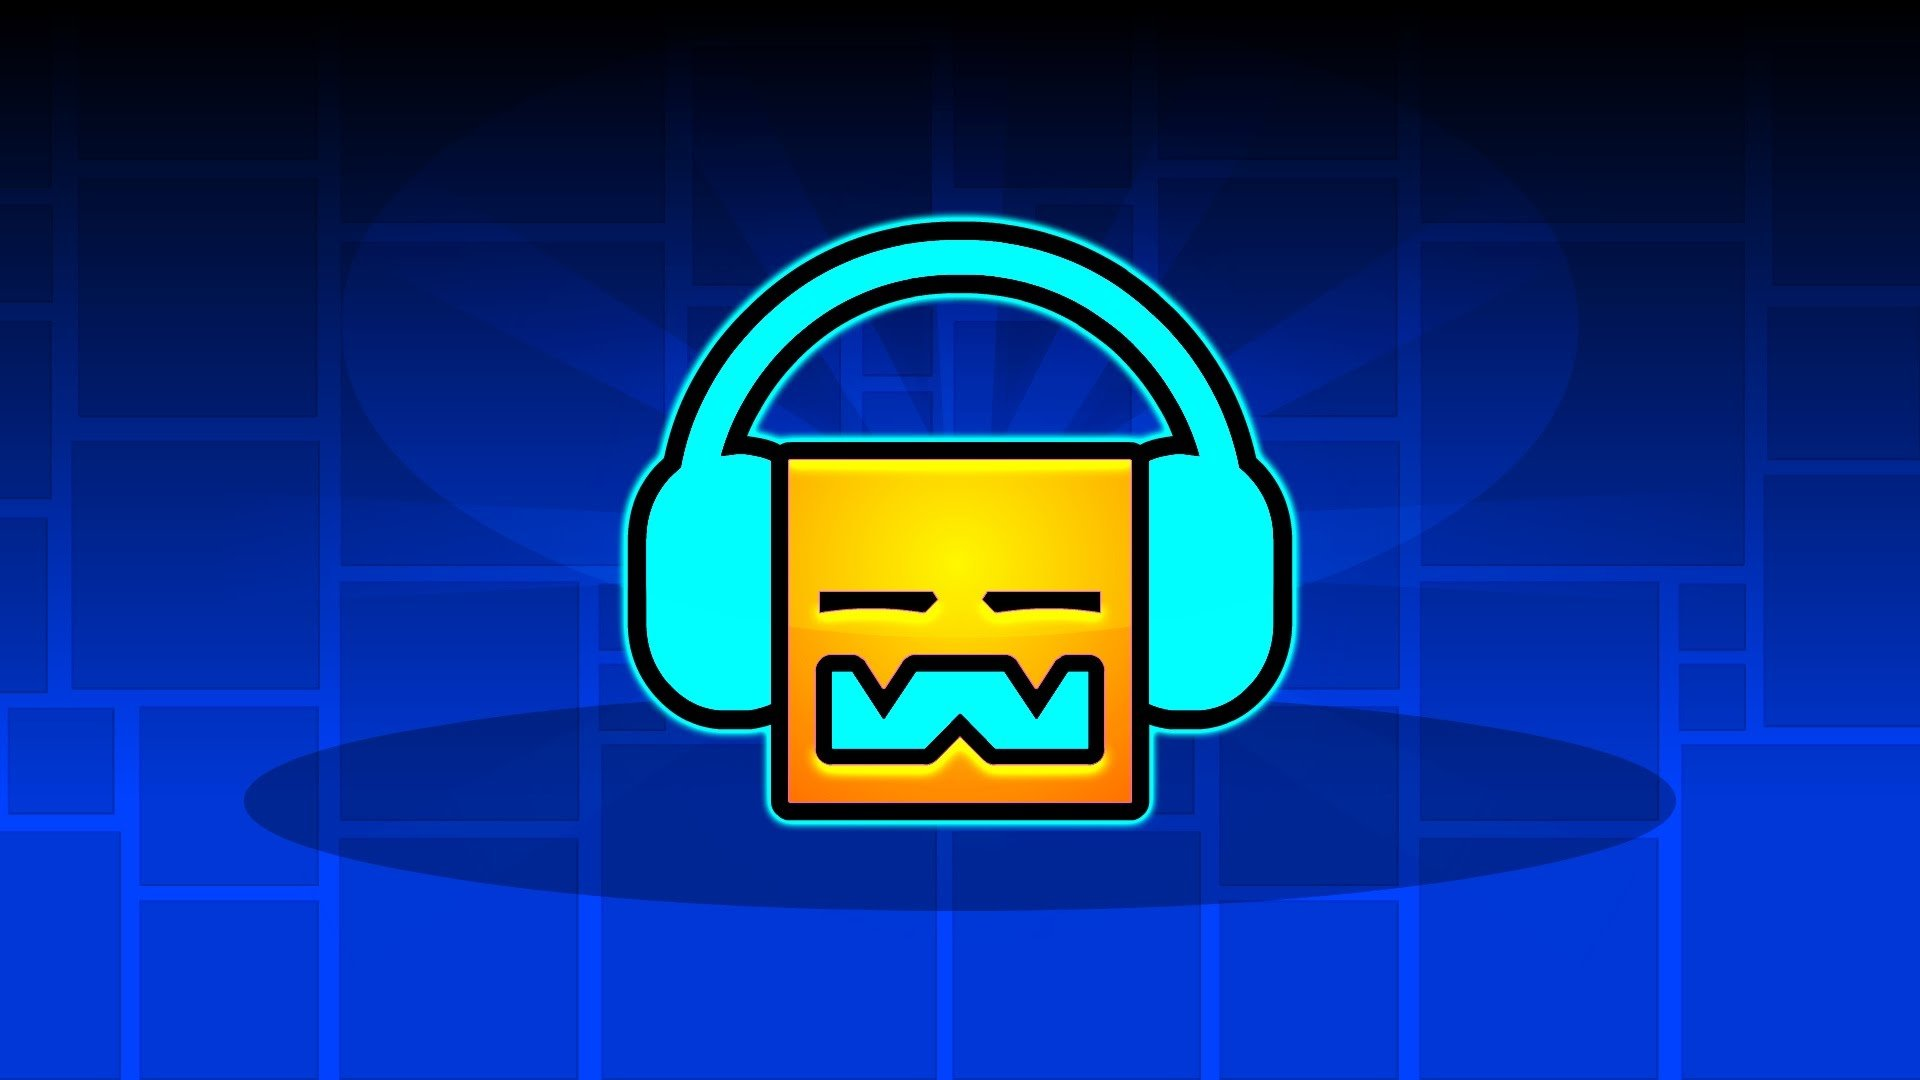 GEOMETRY DASH THE OFFICIAL SONG 1920x1080